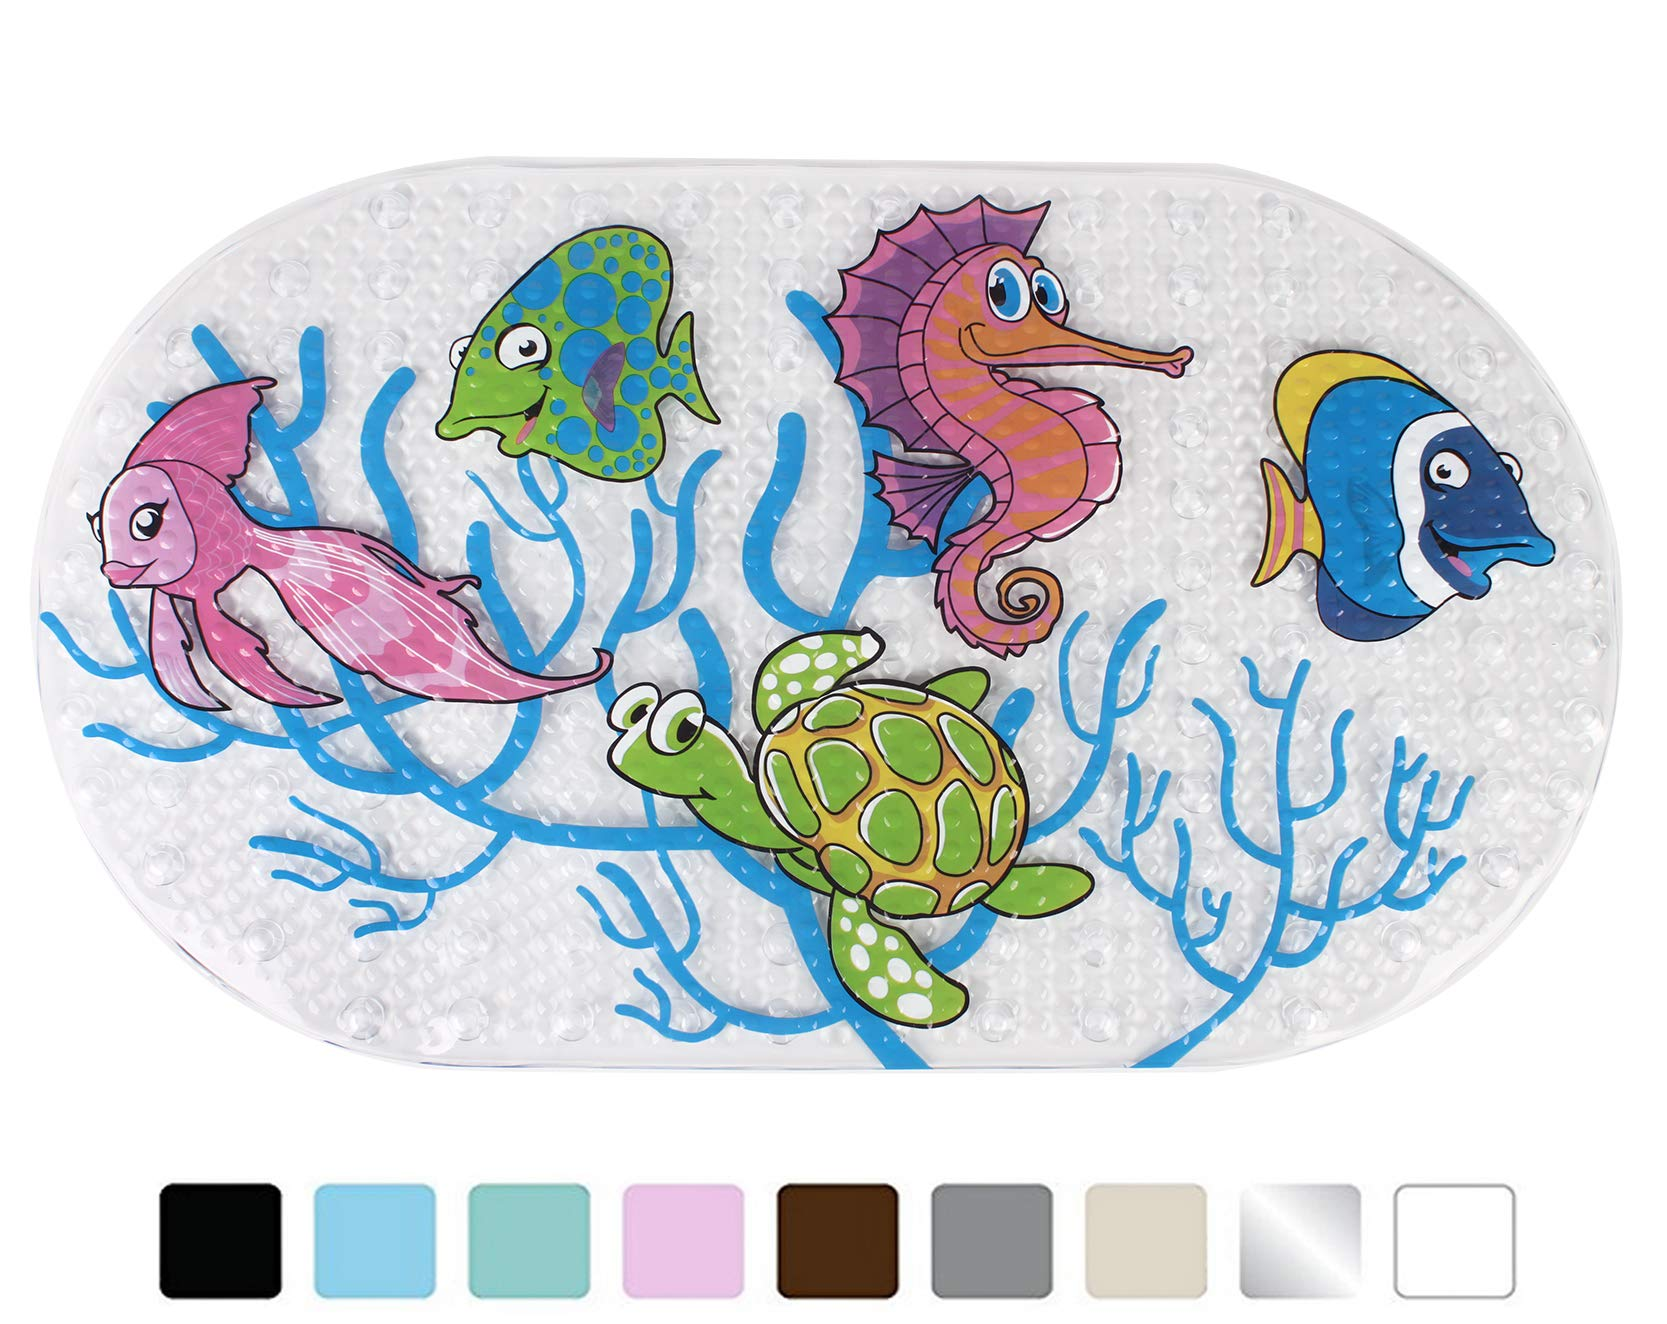 Yimobra Original Bath tub and Shower Mat for Kids Anti Bacterial,Phthalate Free,Latex and Machine Washable Cartoon Pattern Mats Materials,(Baby 27x15 Inch, Fish) by Yimobra